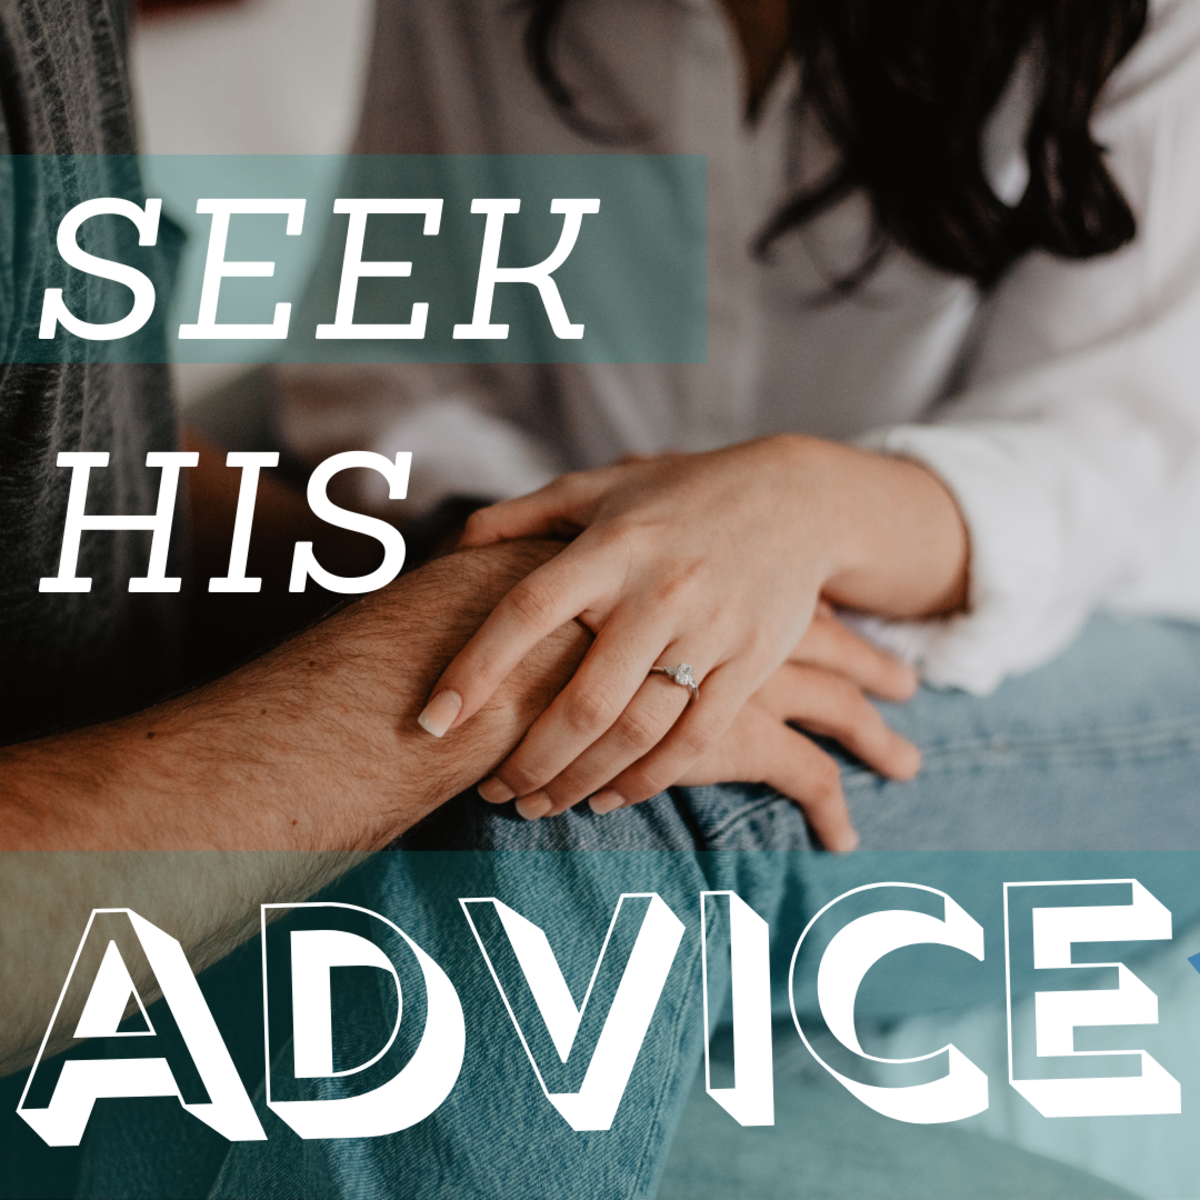 Asking a man for his opinion and advice regarding important matters will make him feel valued.